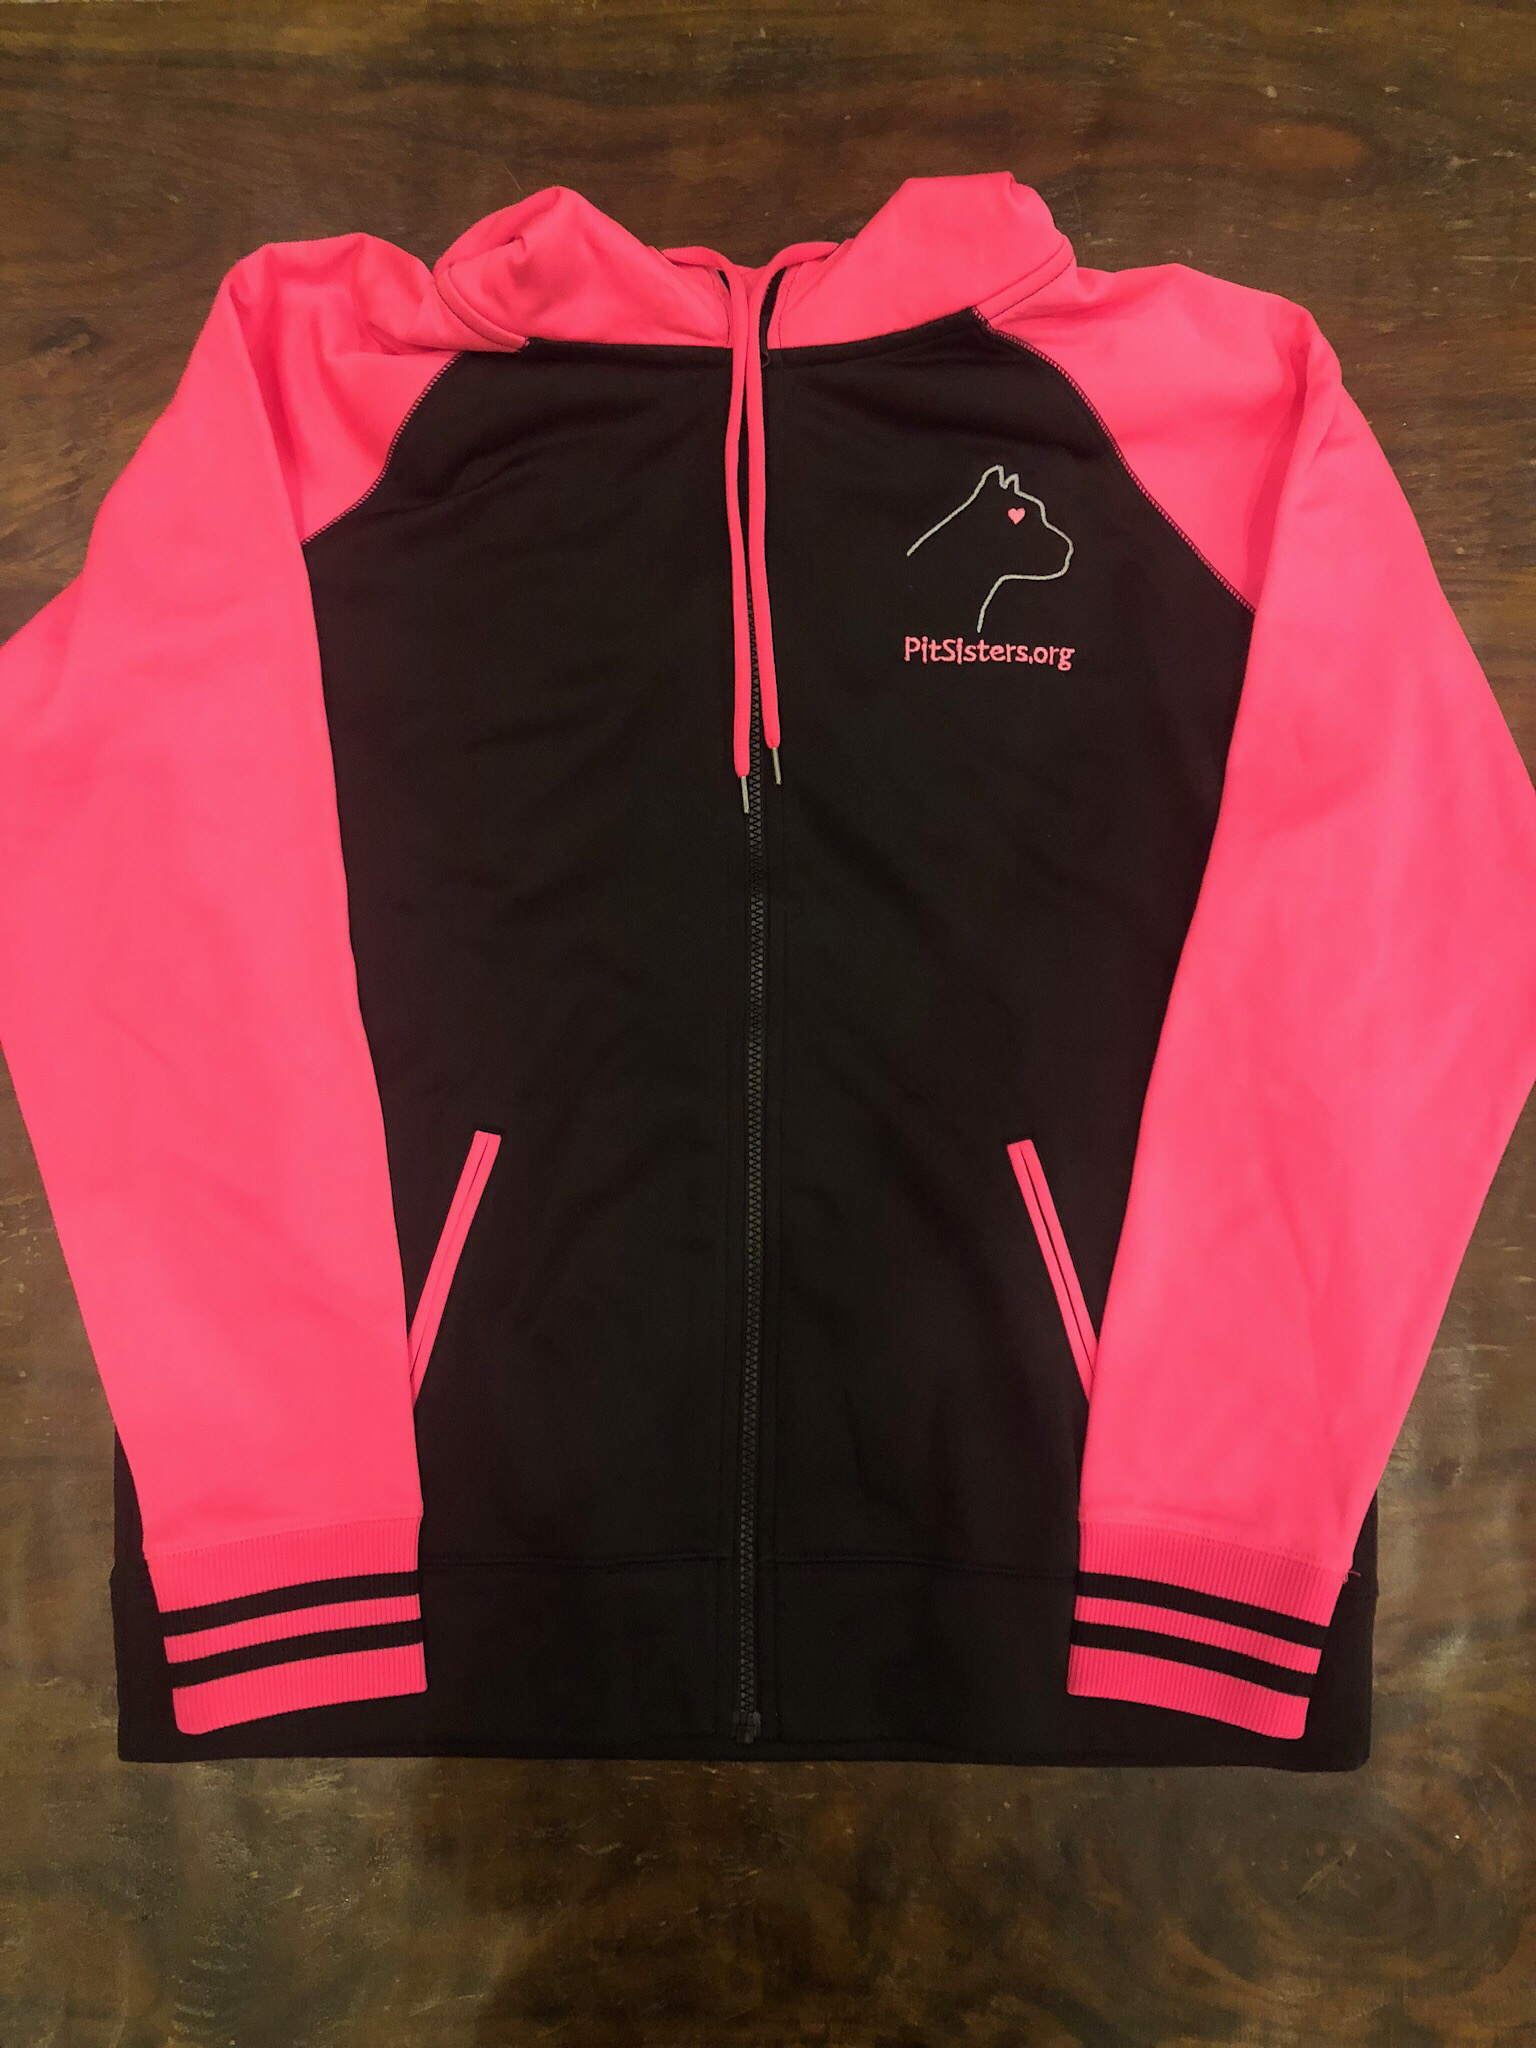 Black with Pink hooded, zip front jacket - 3XL 55709